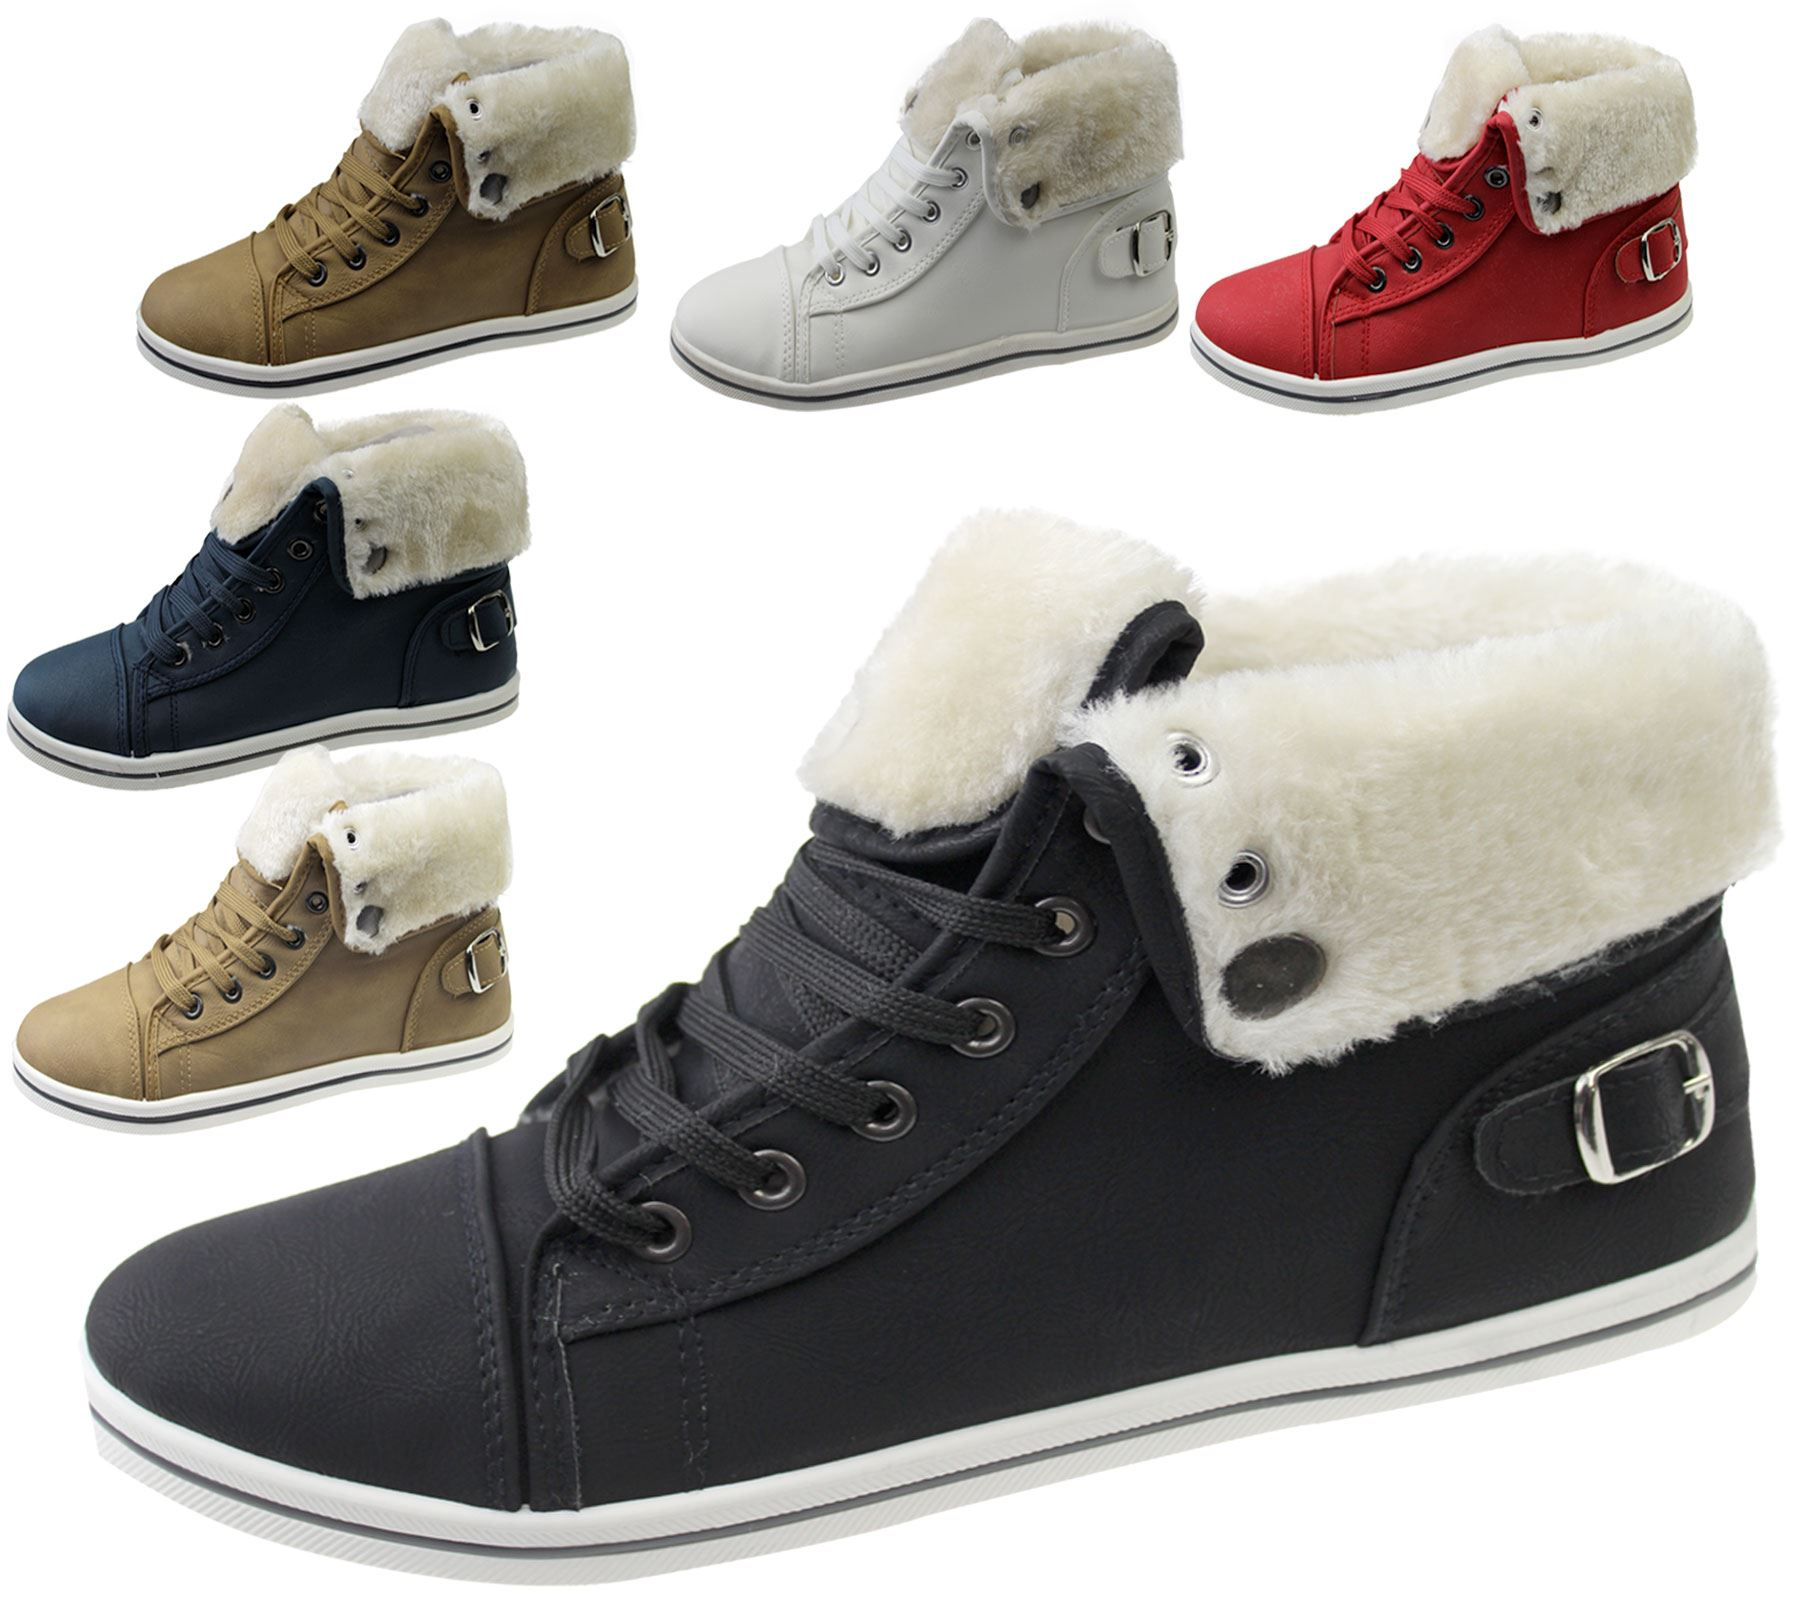 Girls-Boots-Womens-Warm-Lined-High-Top-Ankle-Trainer-Ladies-Winter-Shoes-Size miniatura 24